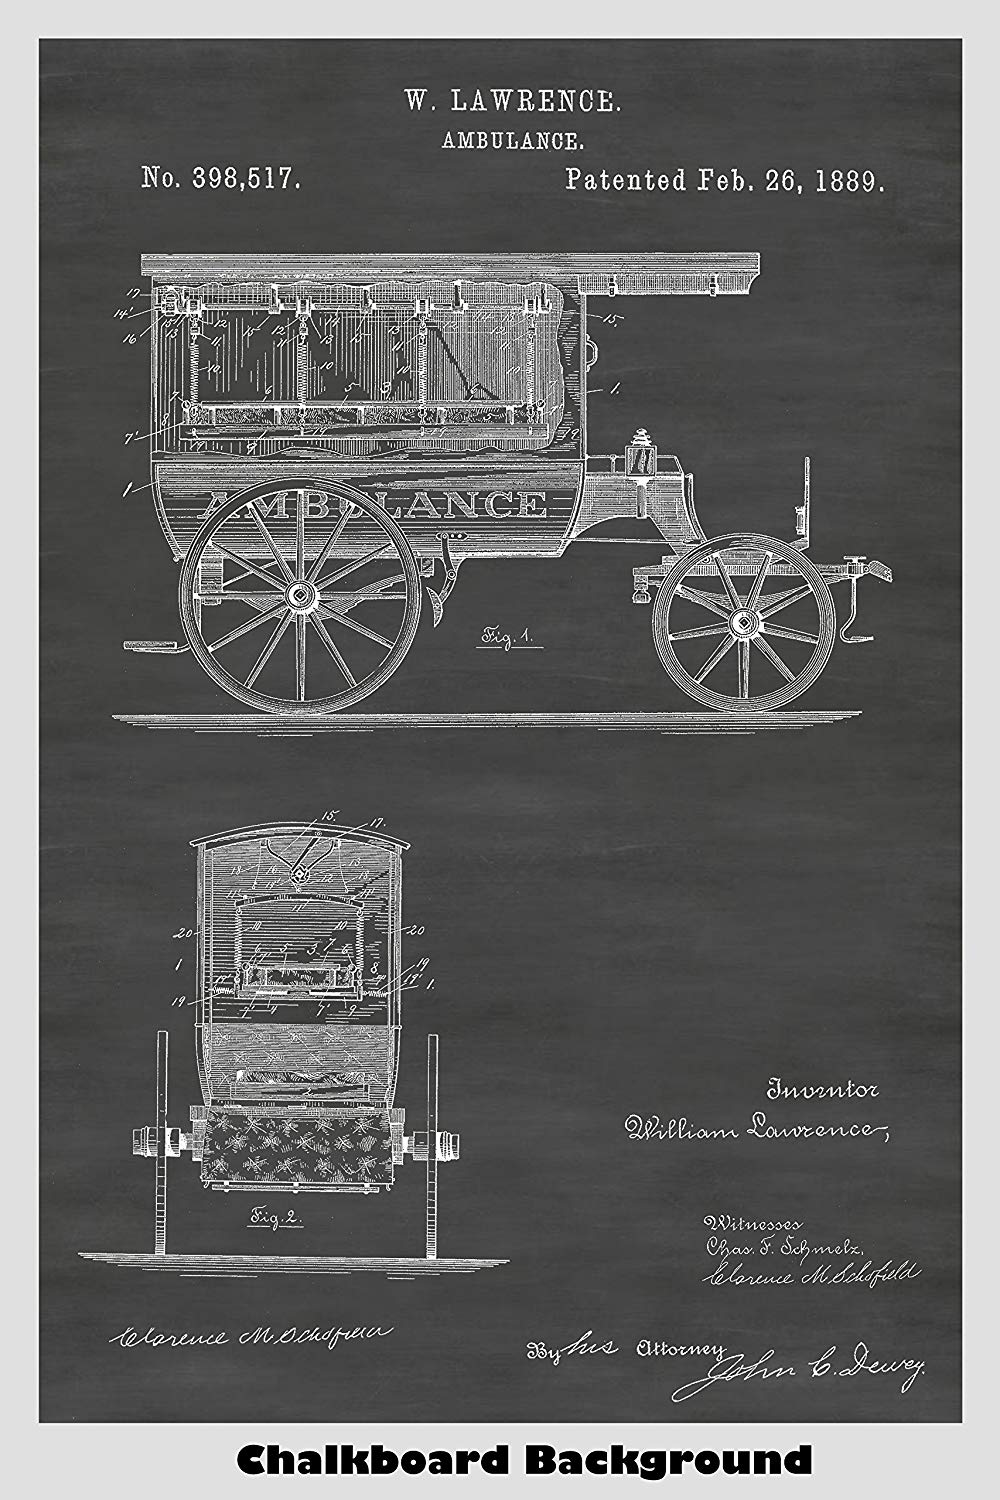 Late 1800's Ambulance Poster on Our Chalkboard Background - One of Eight Background Choices